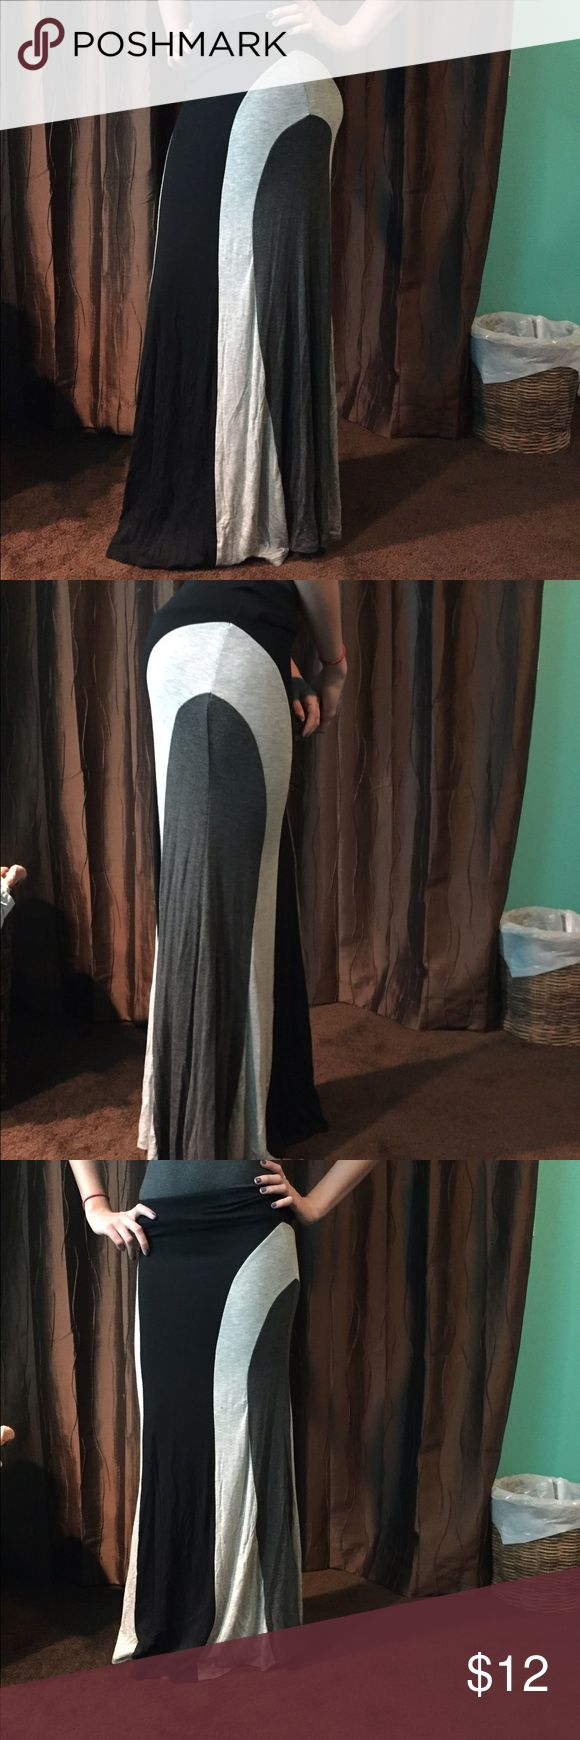 """Black and grey maxi skirt Very form fitting and flattering maxi skirt. It is size small but fits this 5'10"""" model fine. It is very soft material. The elastic in the waistband was sewn in and it's not very smooth, but it doesn't affect the fit at all Monteau Skirts Maxi"""